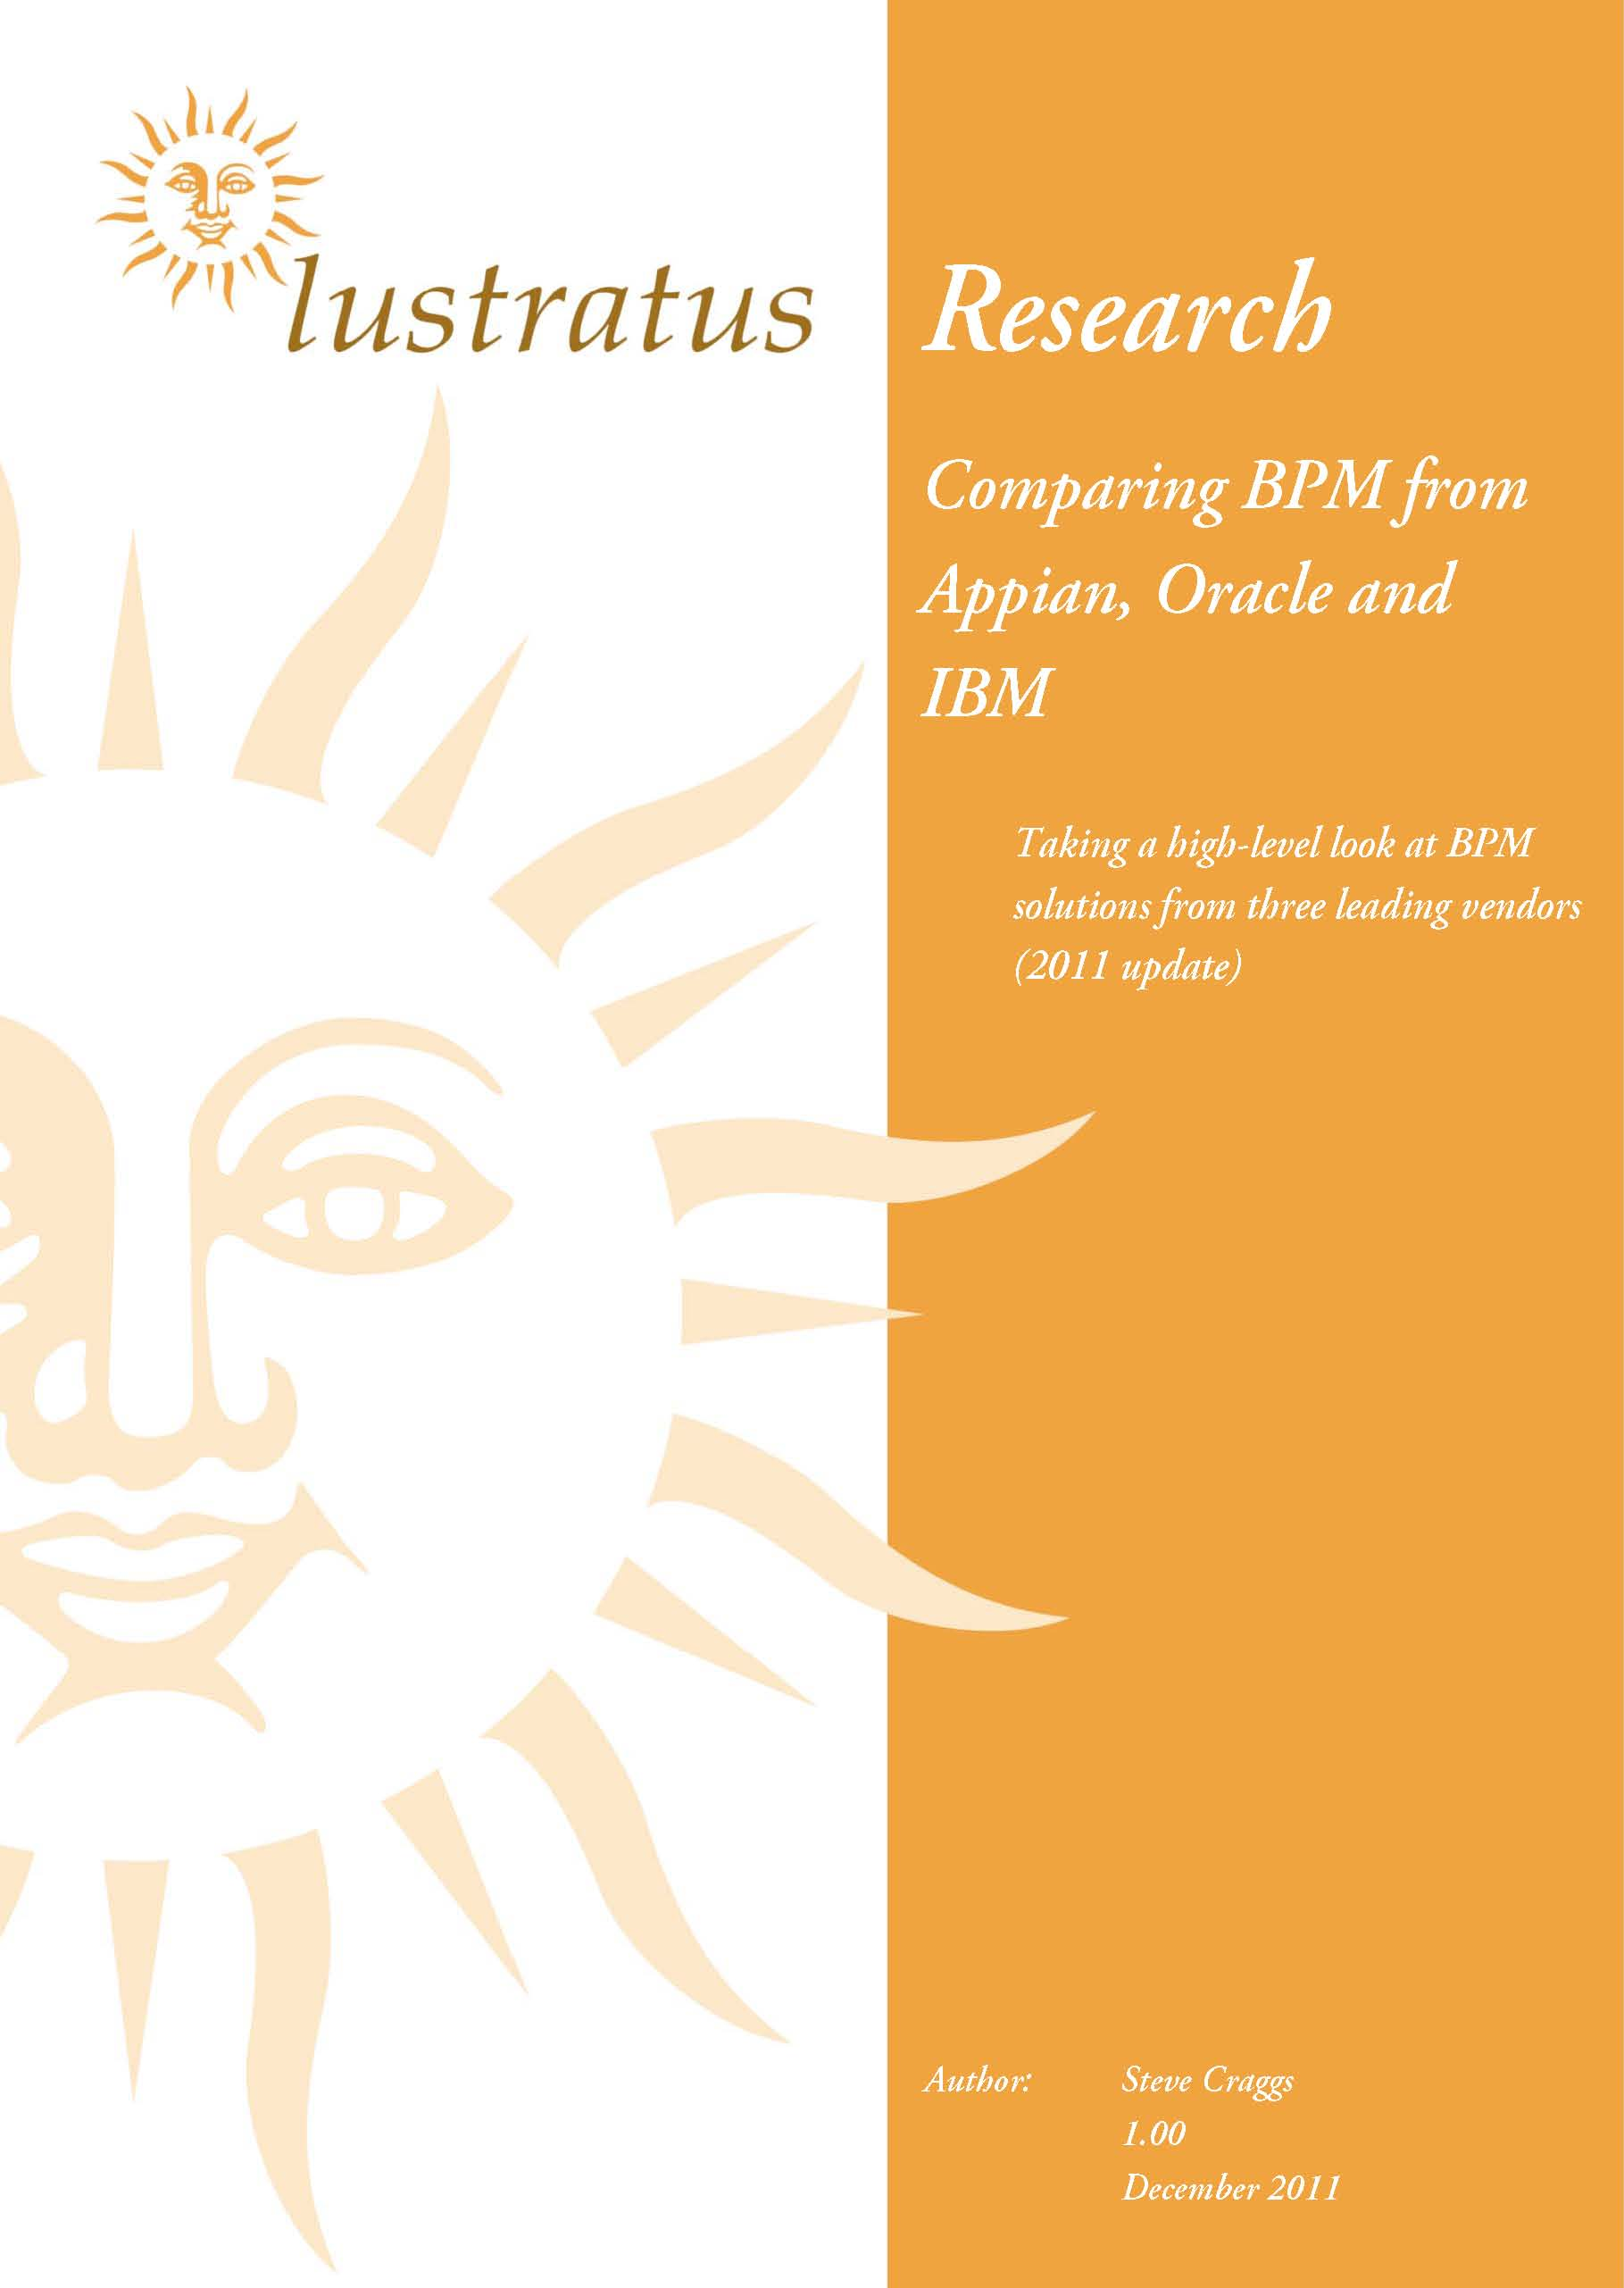 BPM review of Appian, Oracle and IBM 2011 unlocked 1